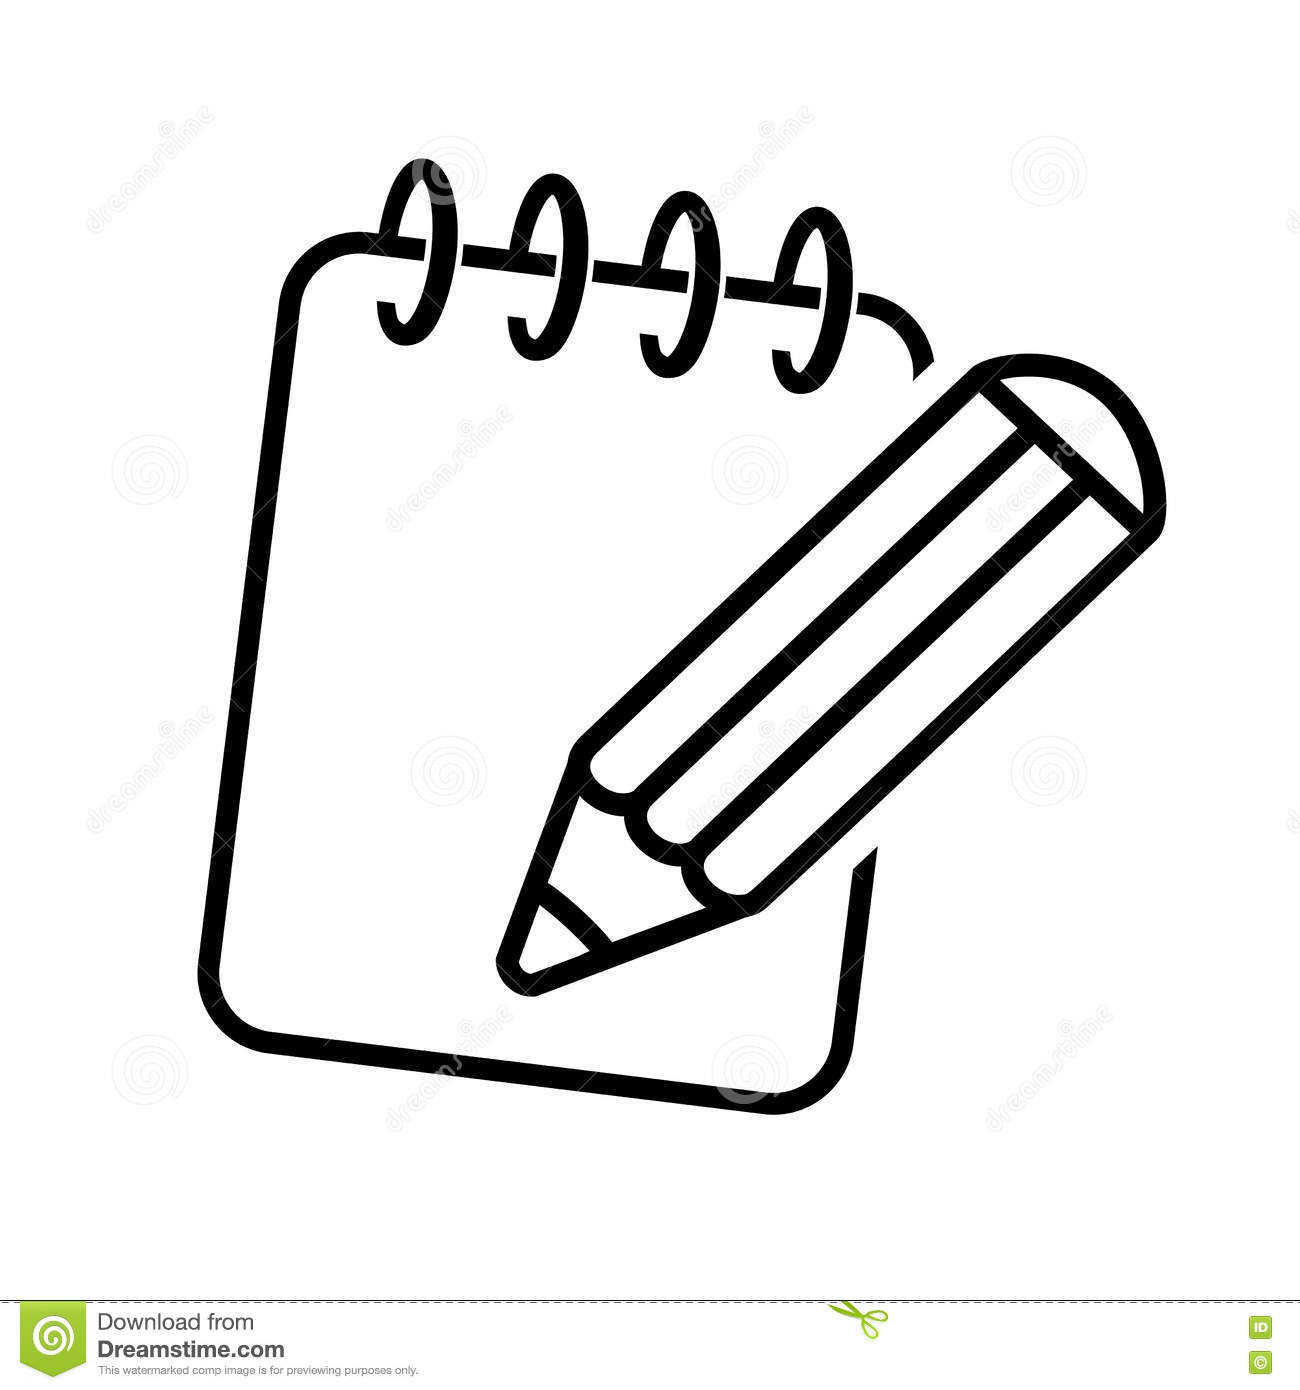 Black Symbol Of Notepad Icon Of Pencil With Writing Pad